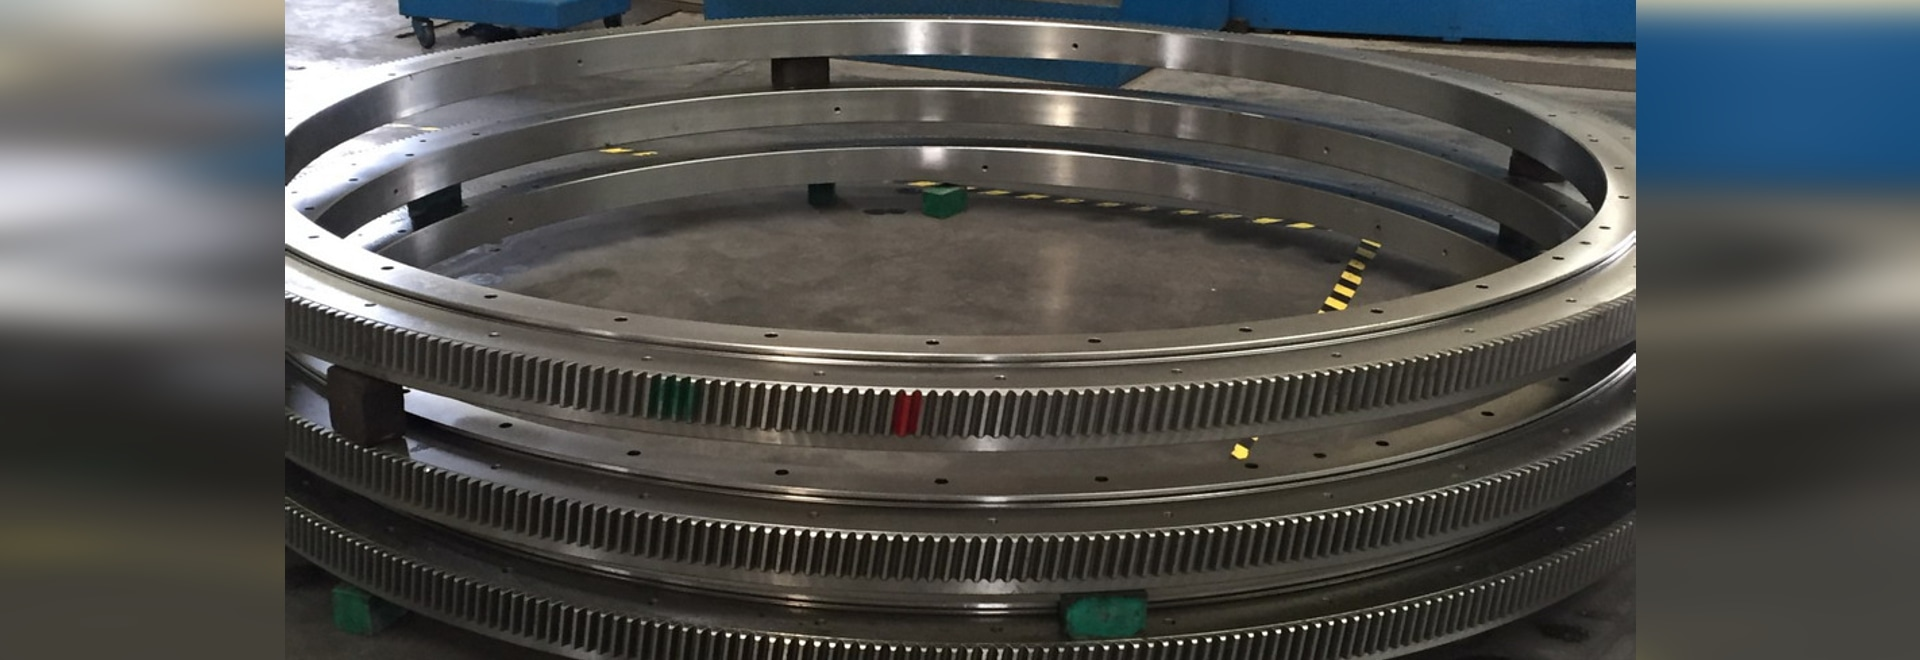 THB's bearings and slewing rings for blow molding machines and filler machines